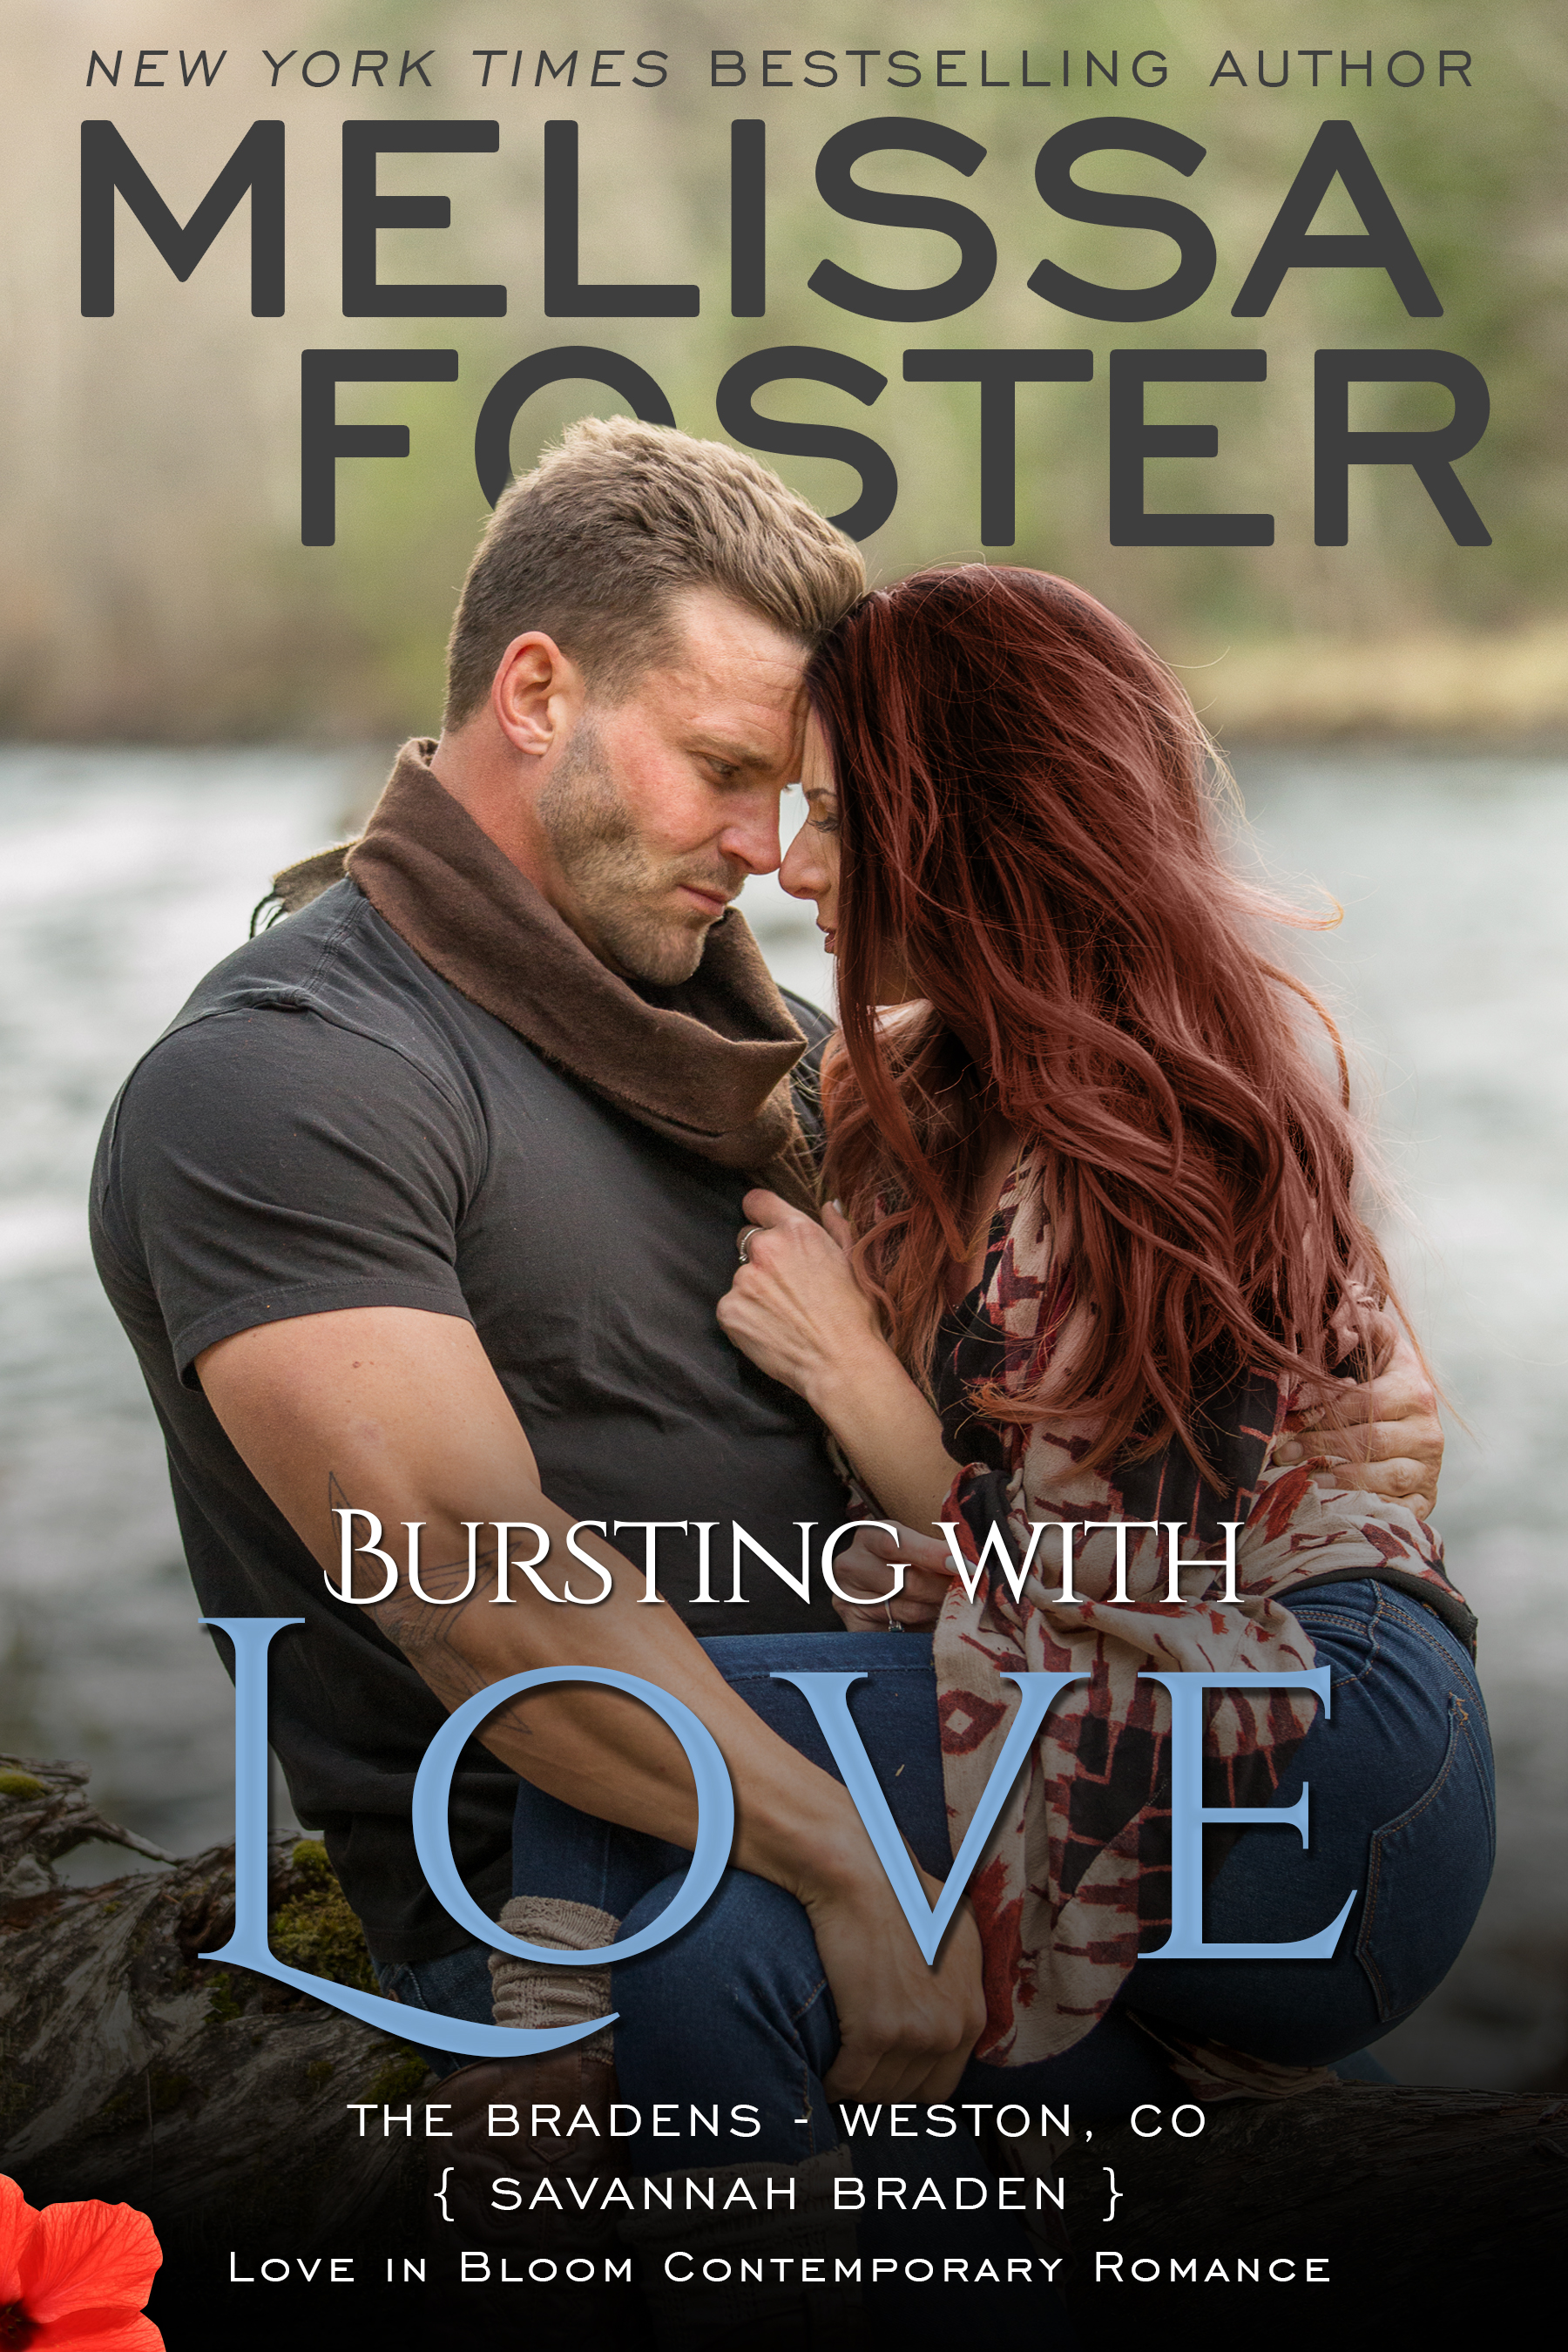 Bursting with Love (Love in Bloom #8; Love in Bloom: The Bradens #5; The Bradens at Weston, CO #5)